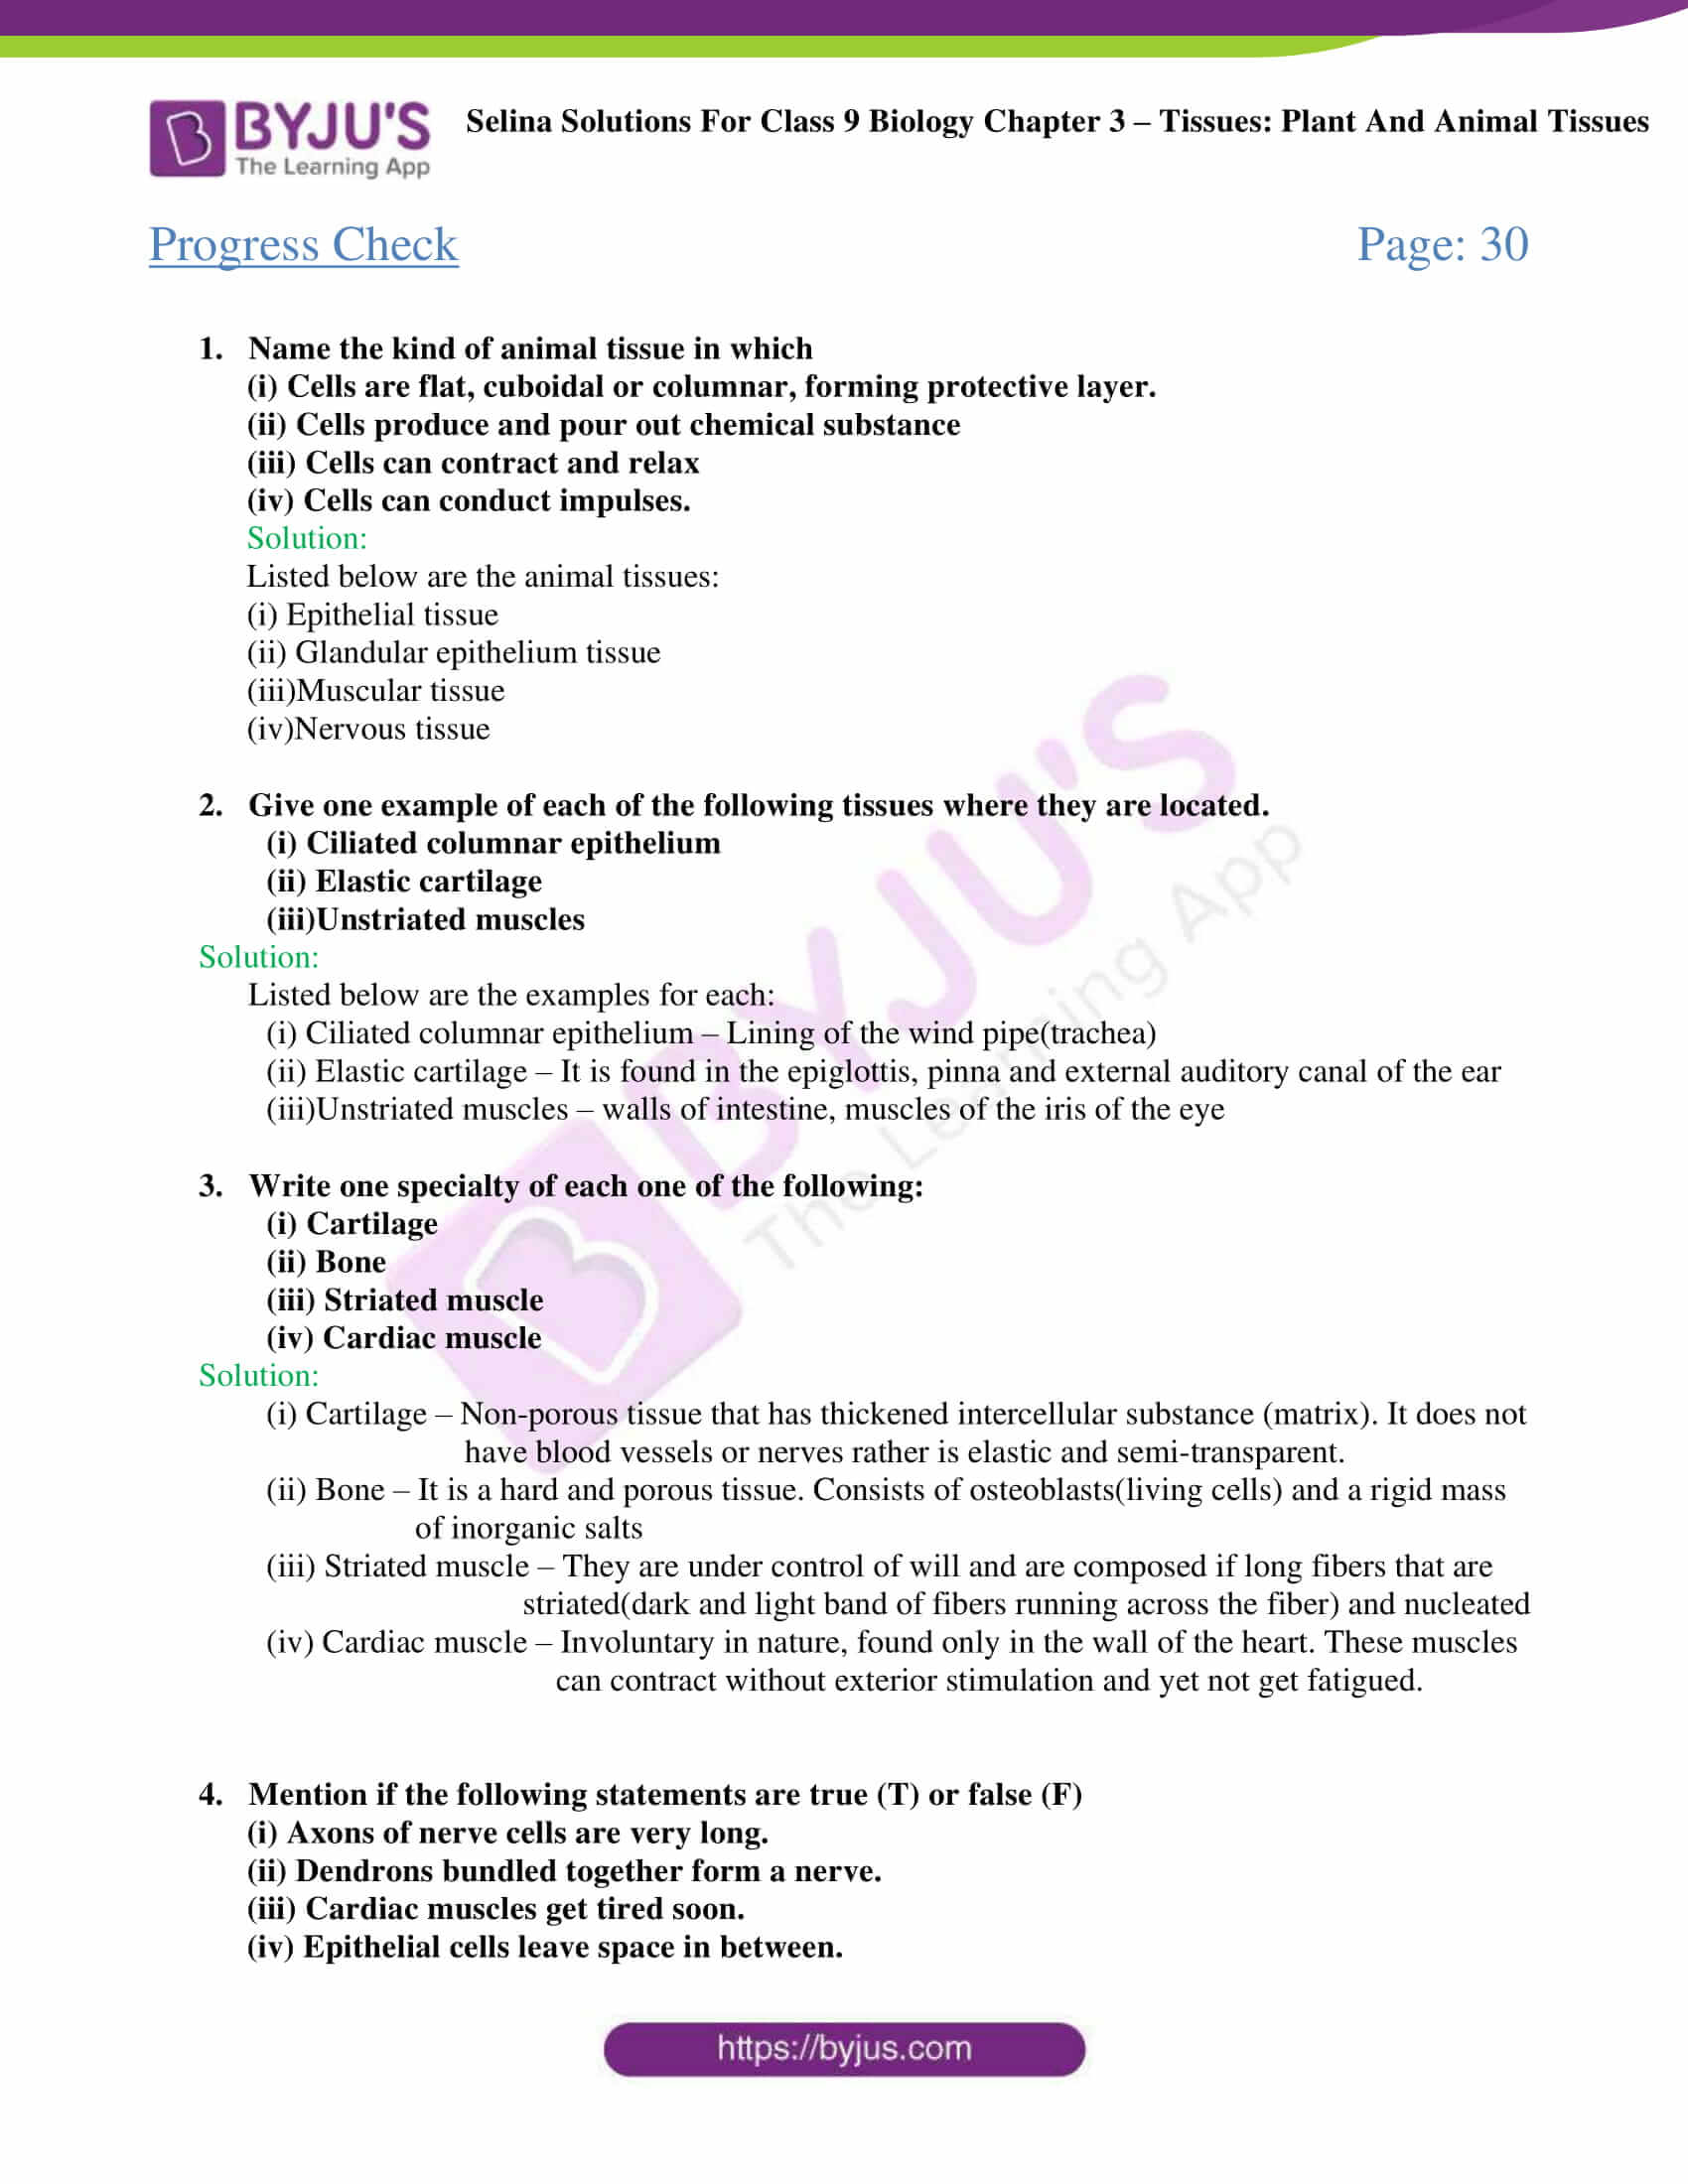 Selina Solutions For Class 9 Biology Chapter 3 Tissues Plant And Animal Tissues part 02